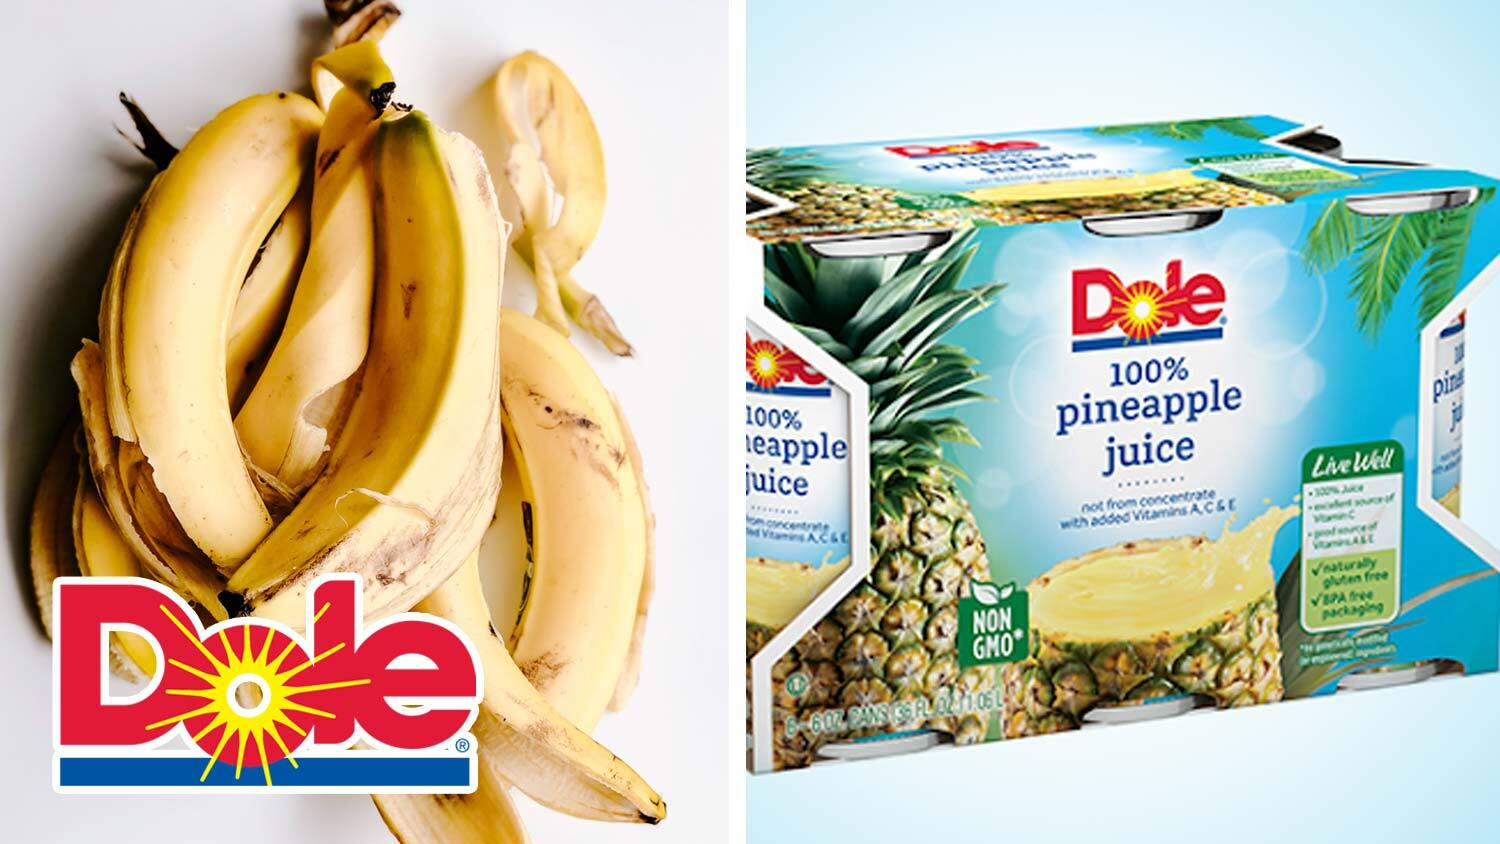 Dole to Turn Bananas and Pineapples Into Packaging